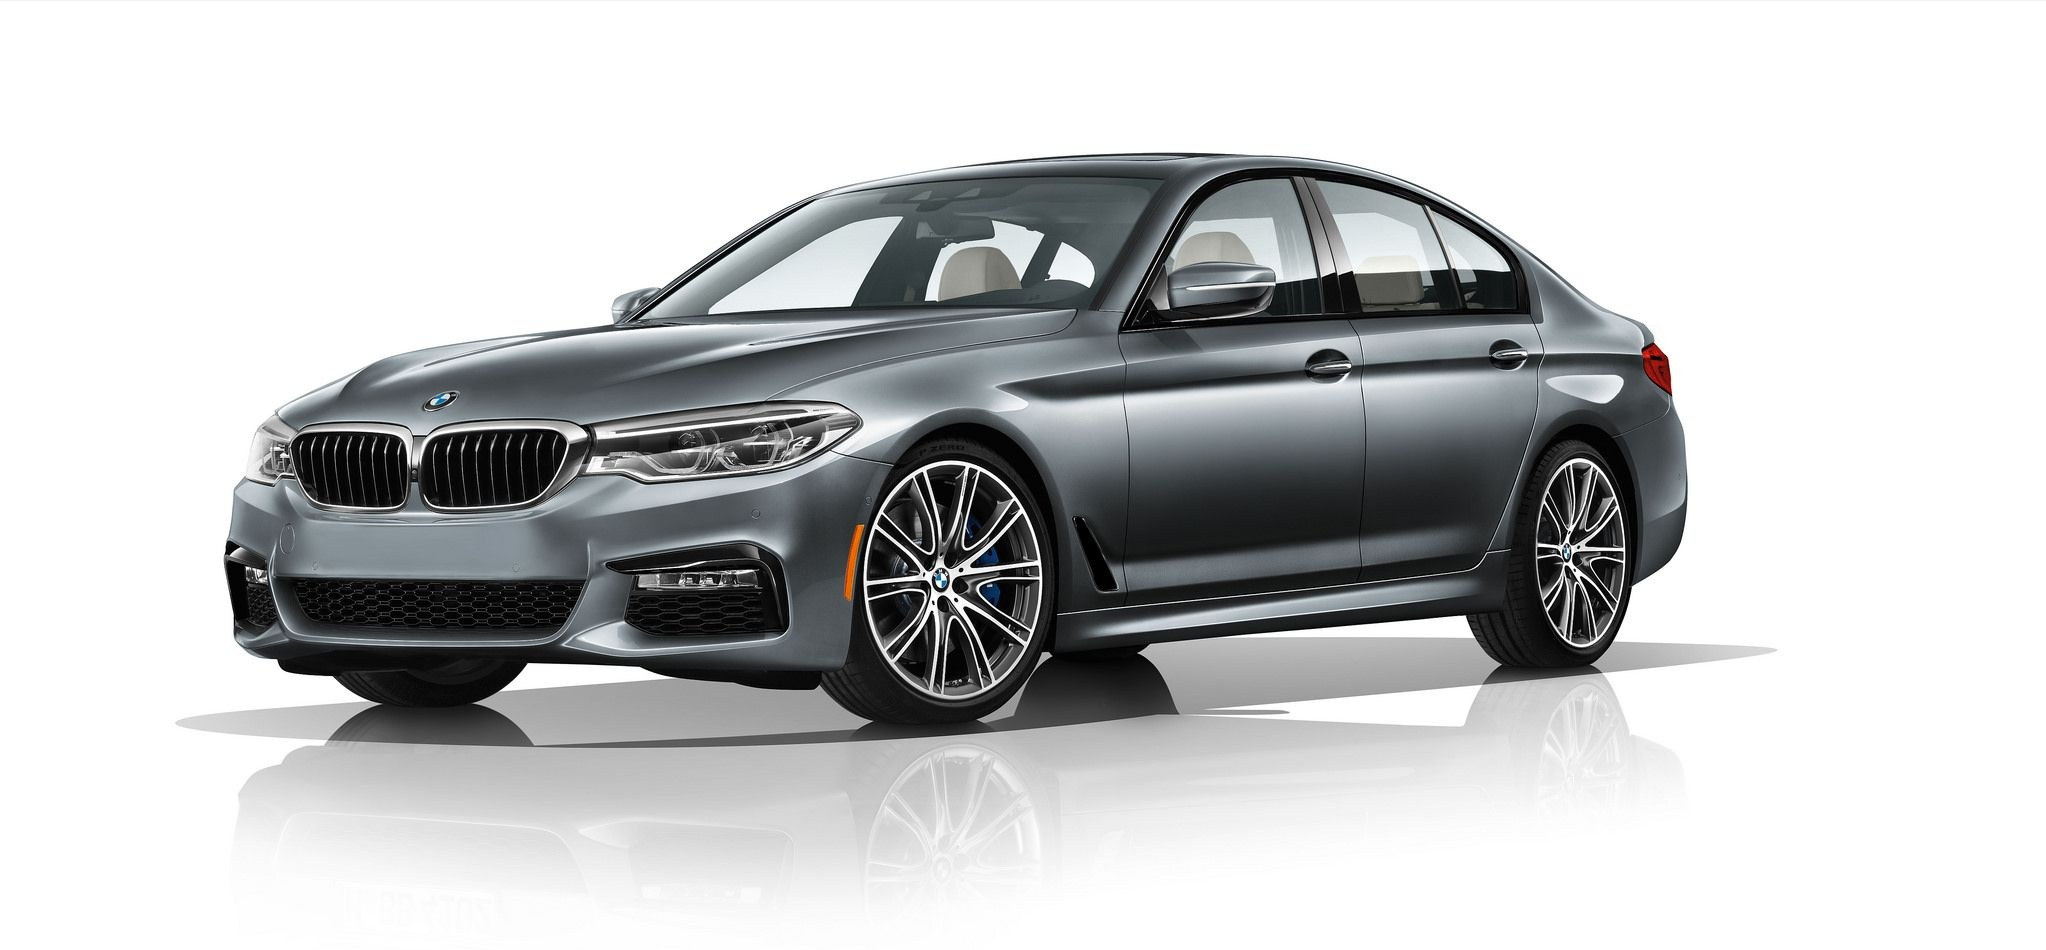 2017 BMW 5 Series | Perillo BMW | Chicago, IL